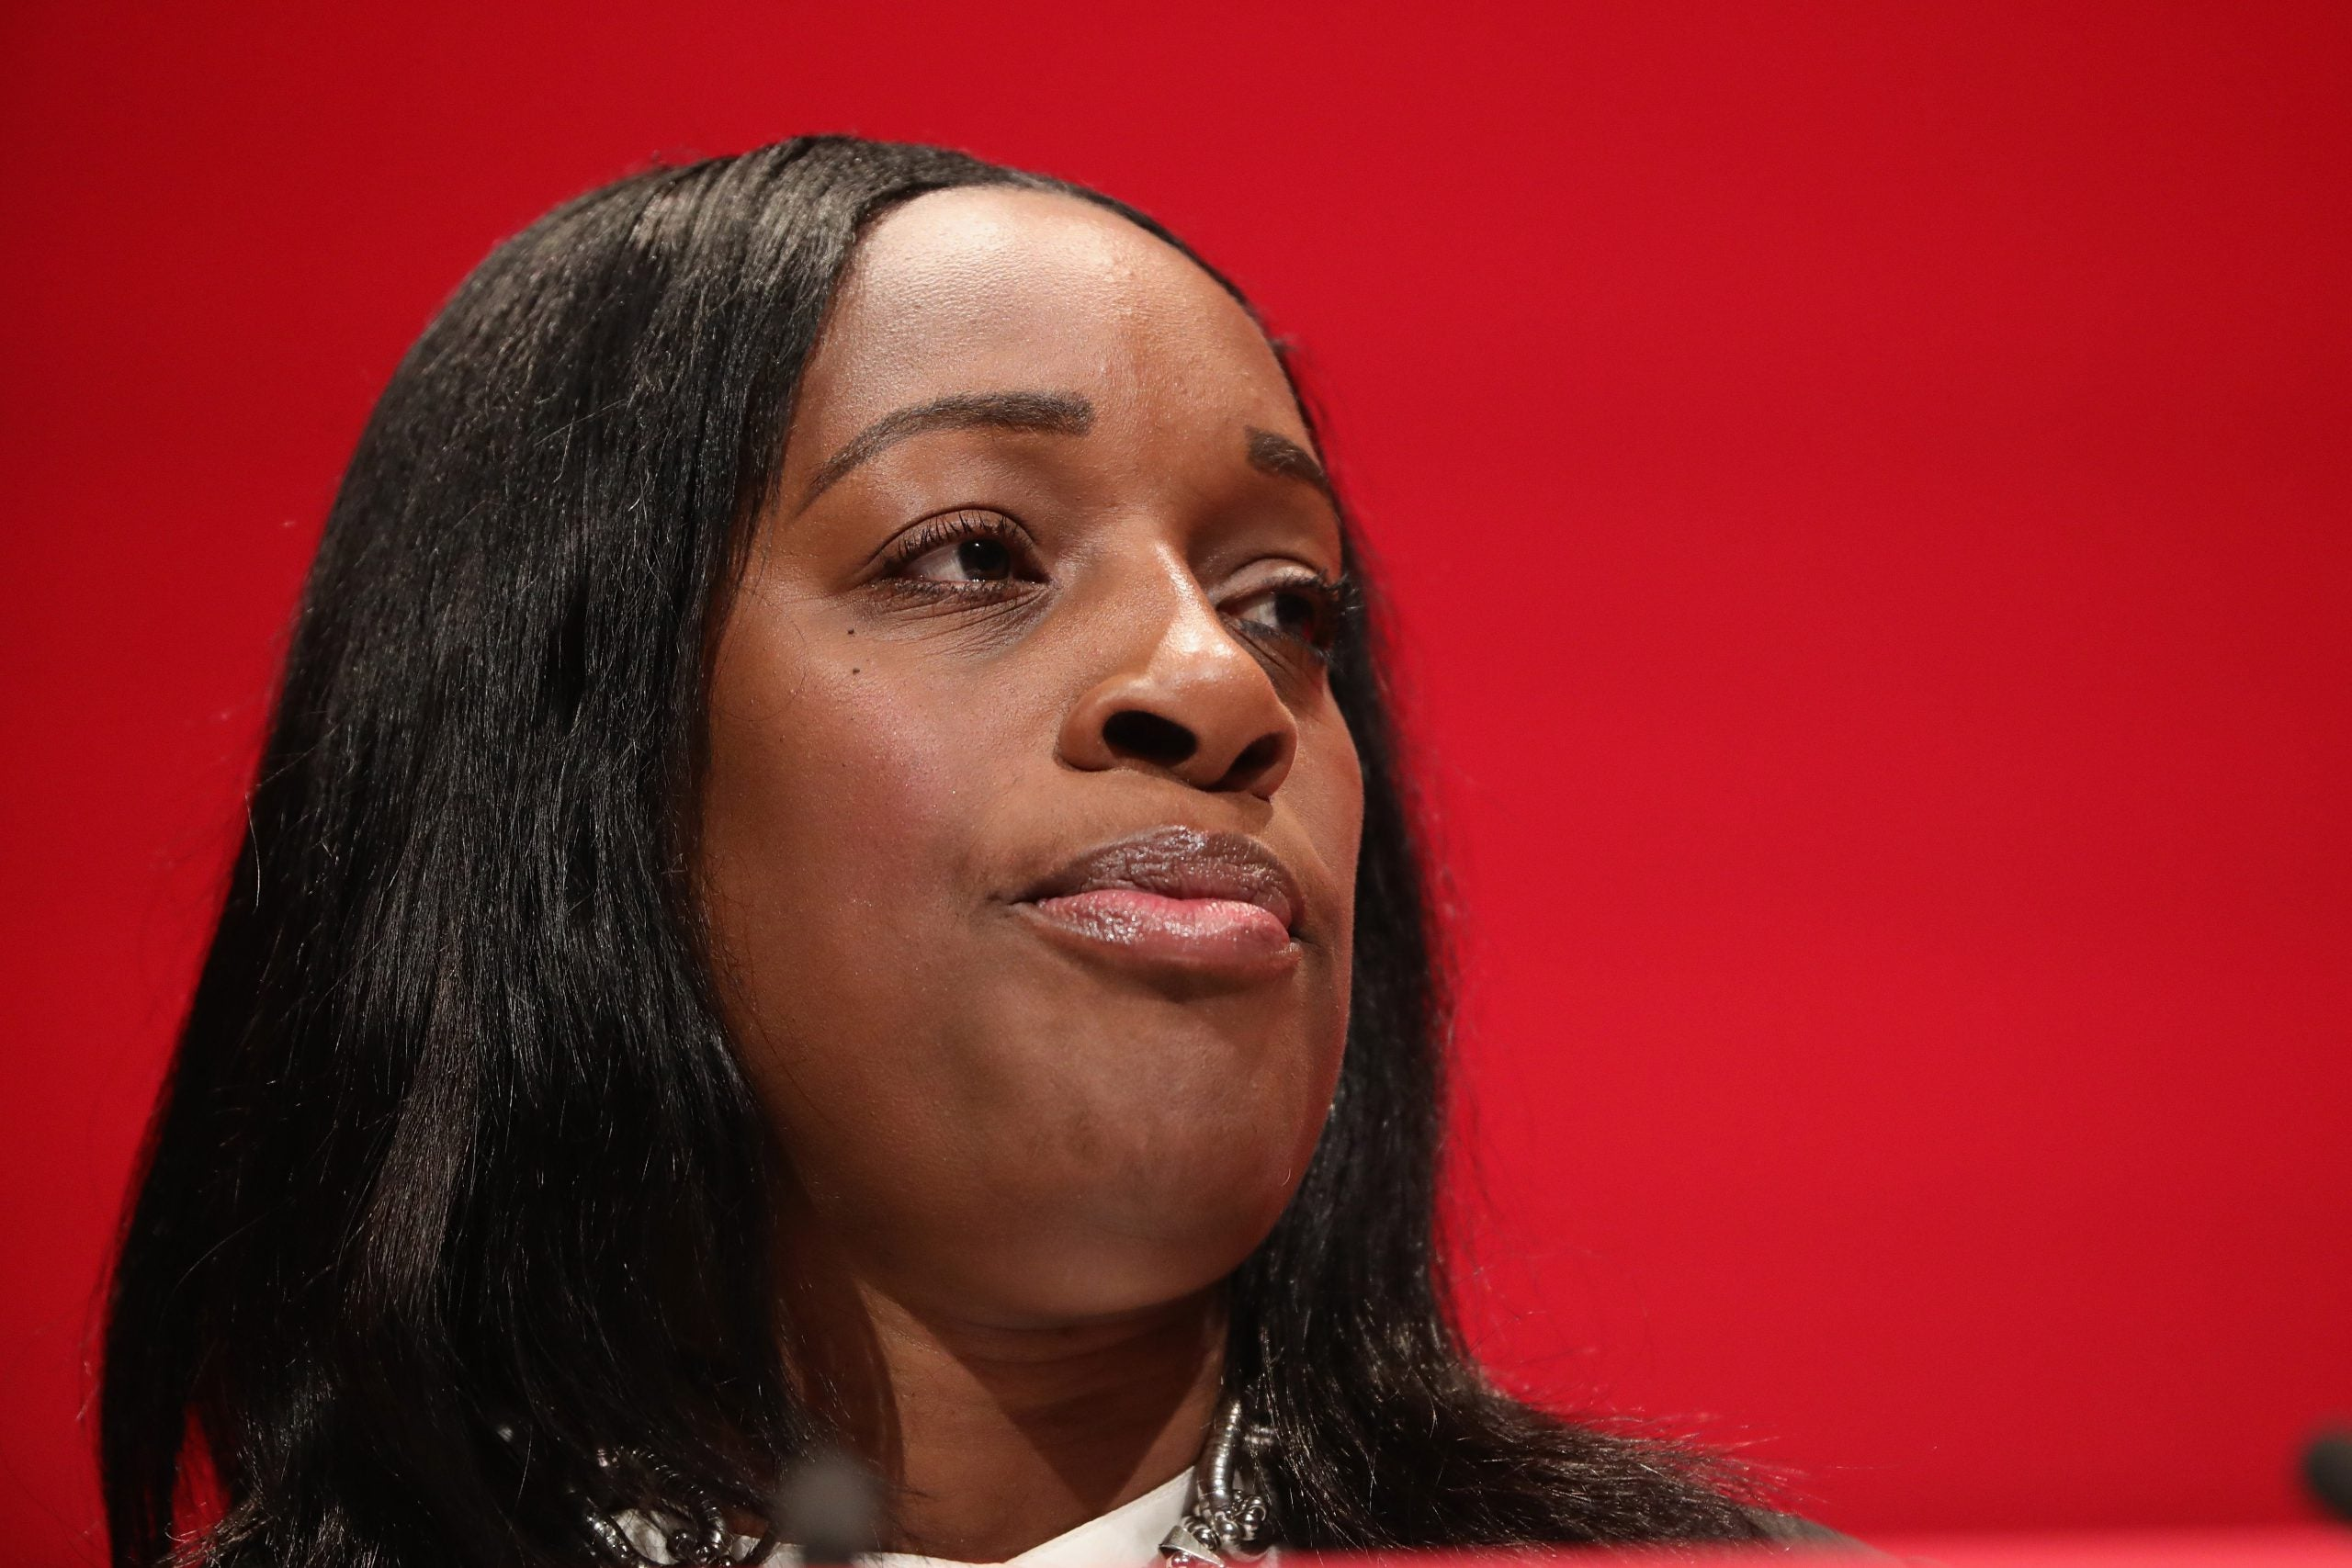 In Vauxhall, Labour must take the chance it denied my mother